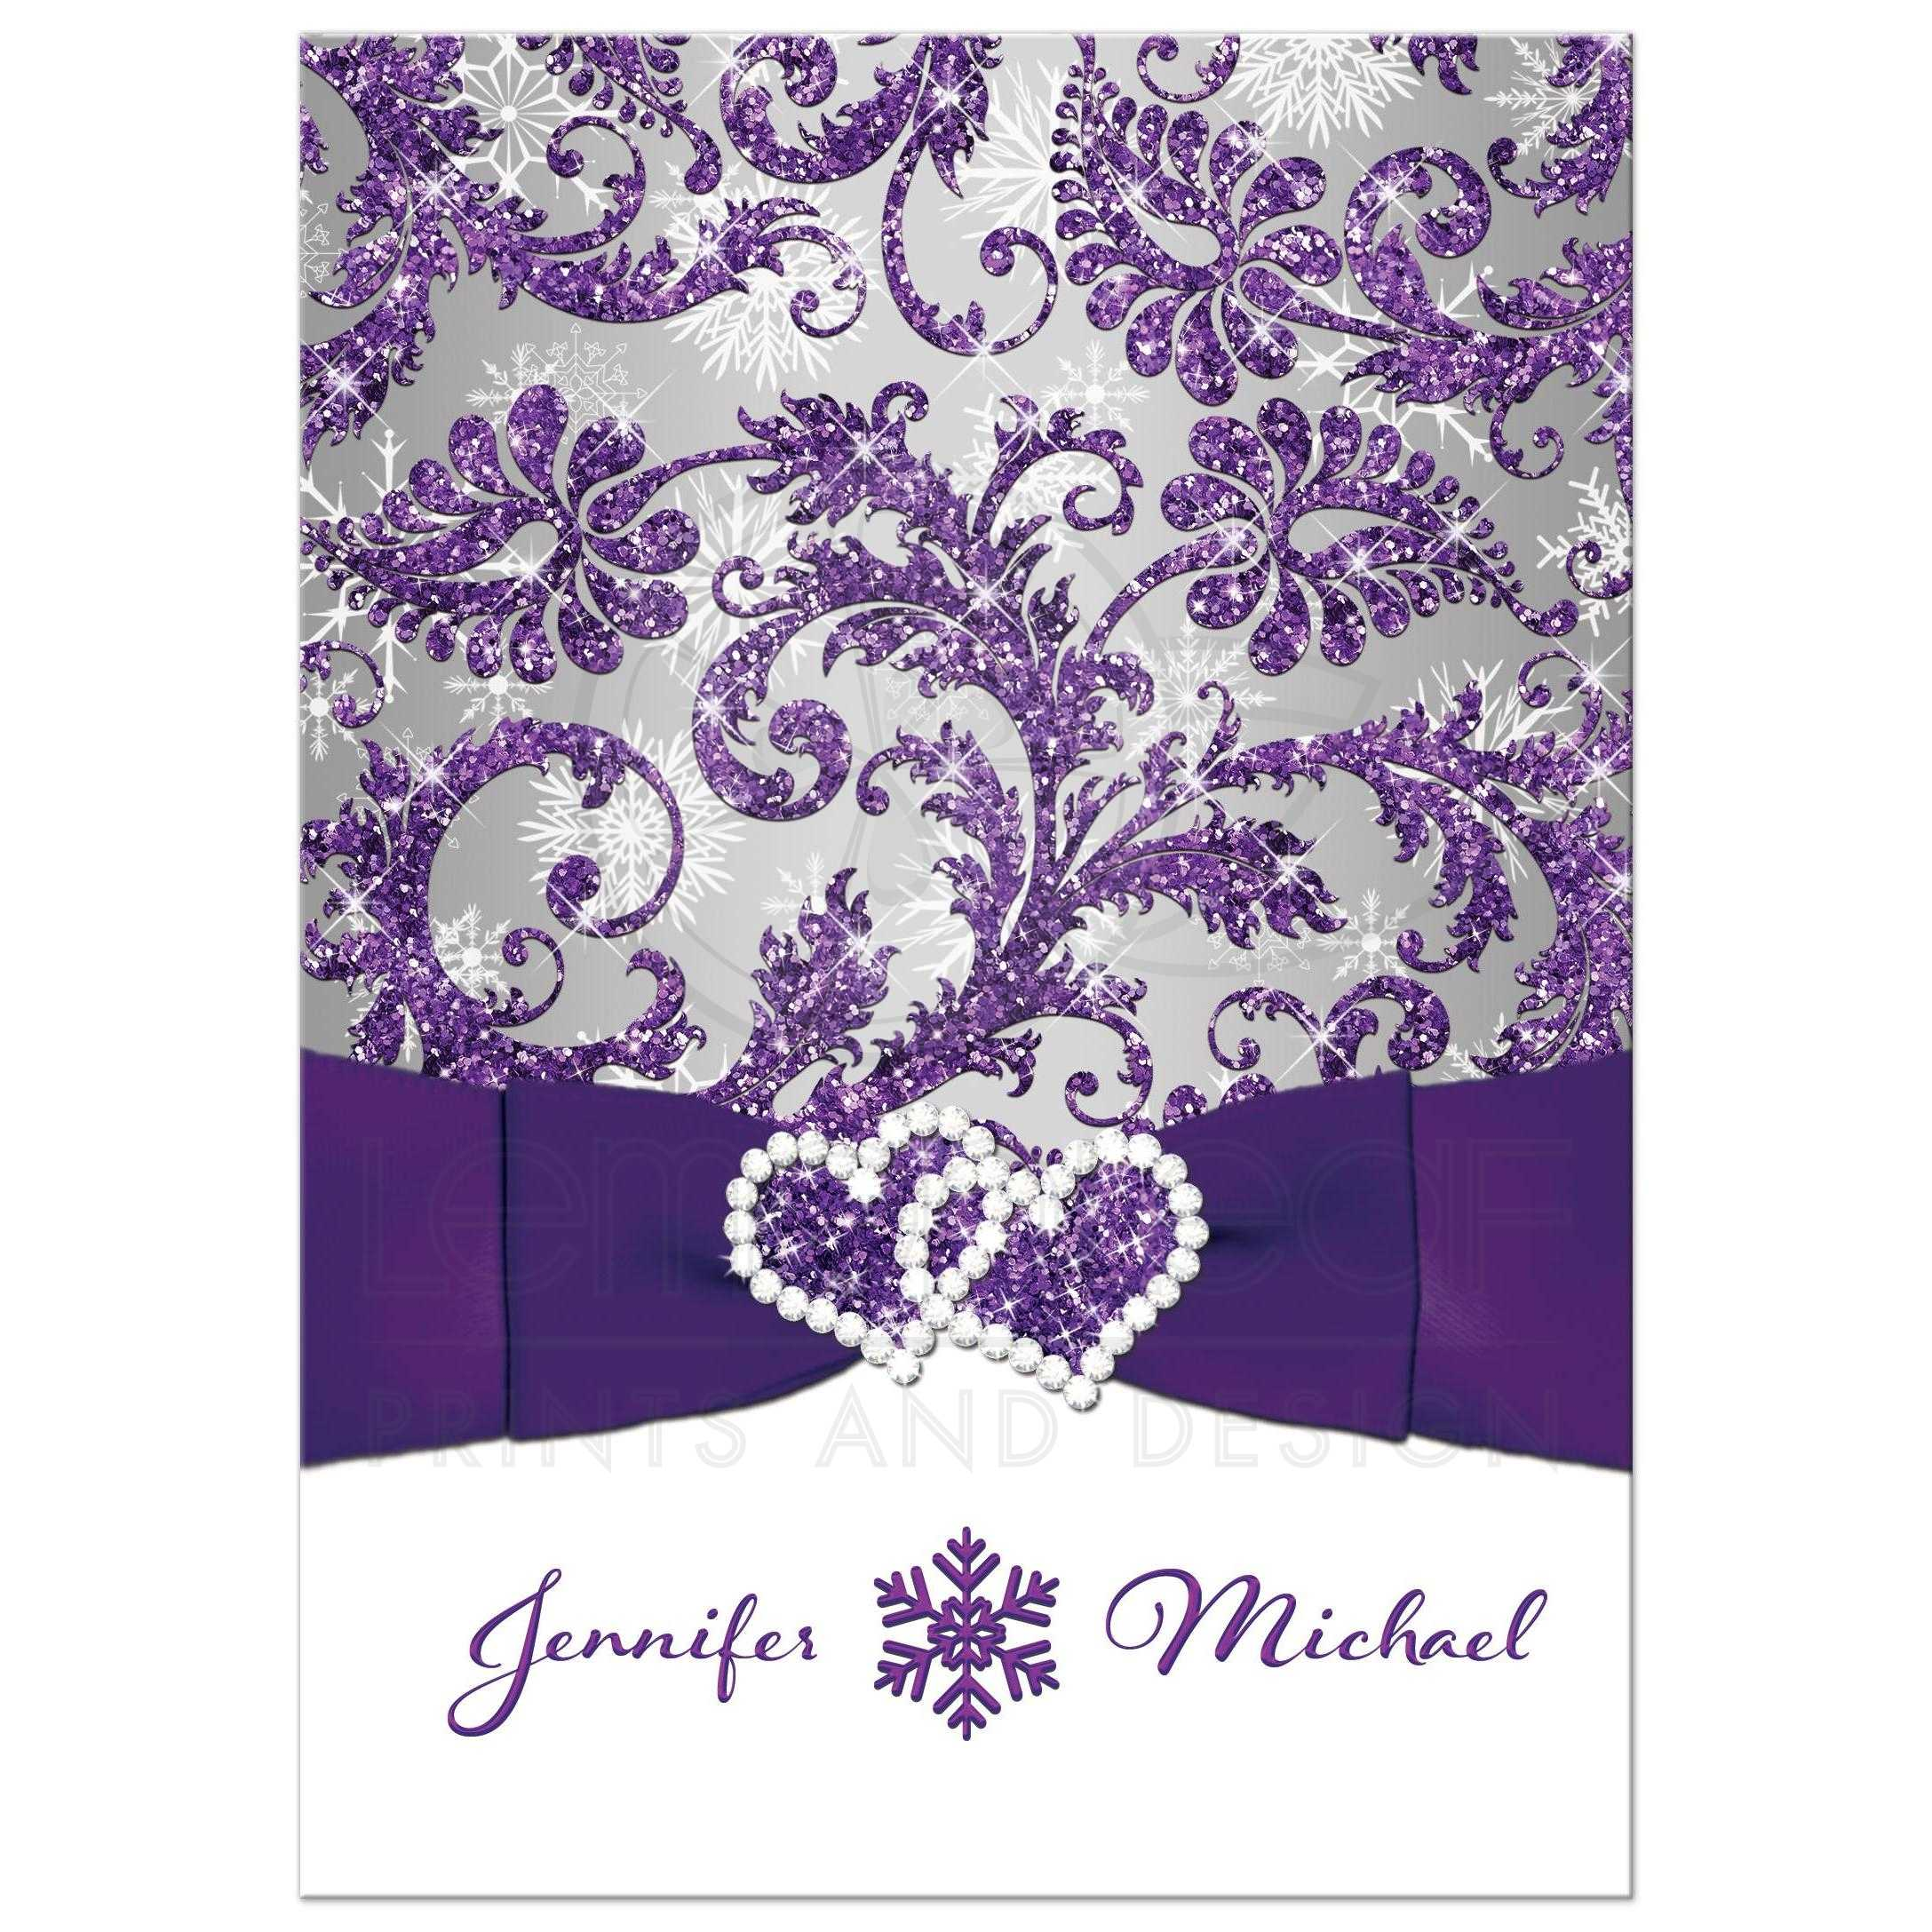 Great Winter Wonderland Wedding Invitation In Ice Purple, Silver, And White  Snowflakes With Ribbon ...